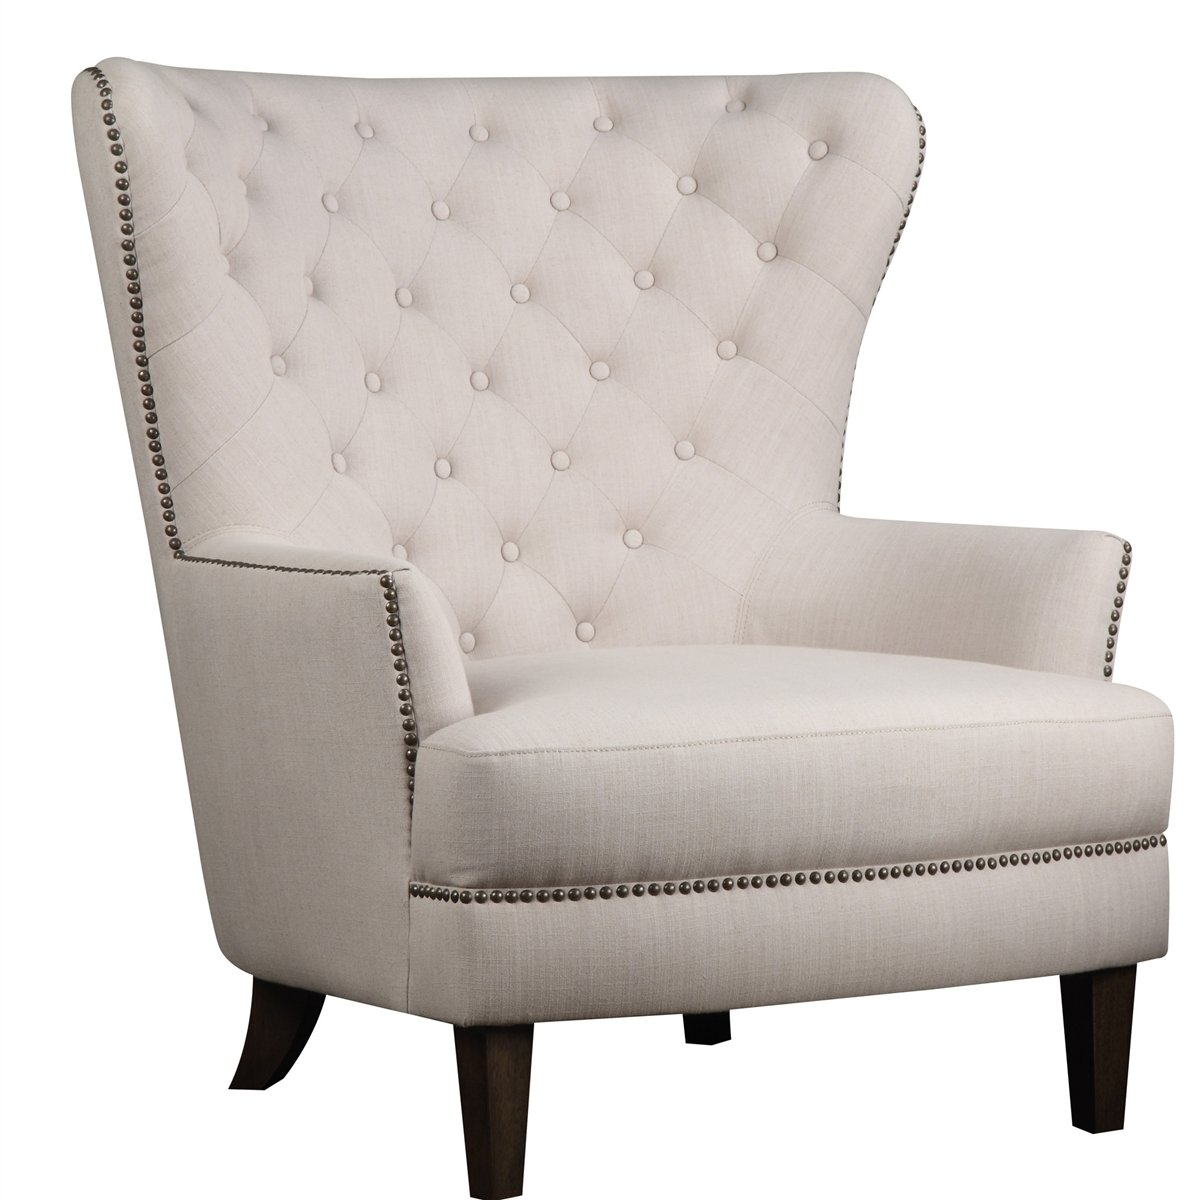 Tufted accent chair home furniture design Tufted accent chair